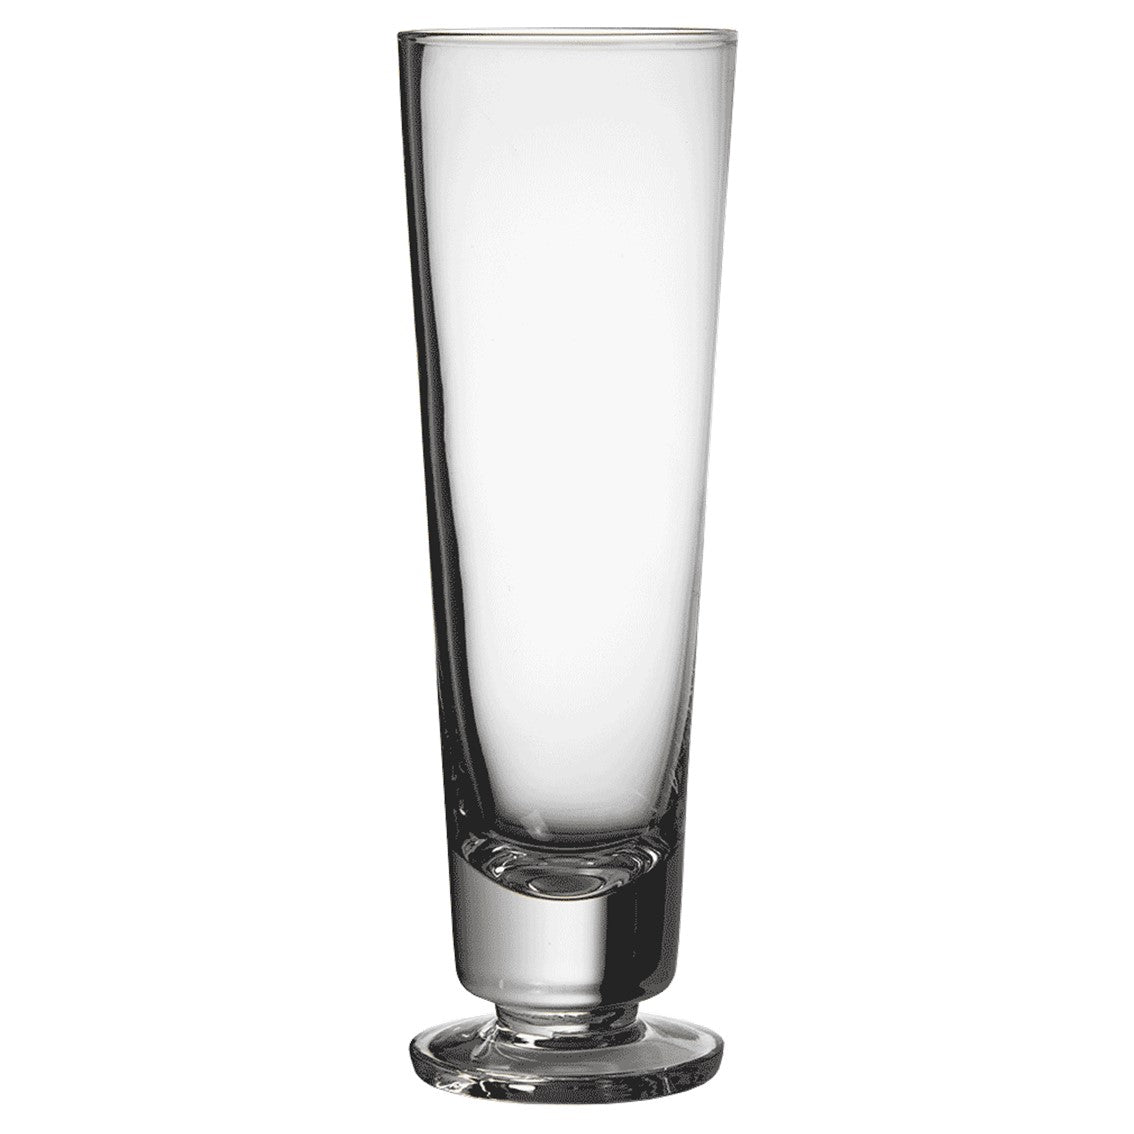 Sling Cocktail Glass 11 fl oz